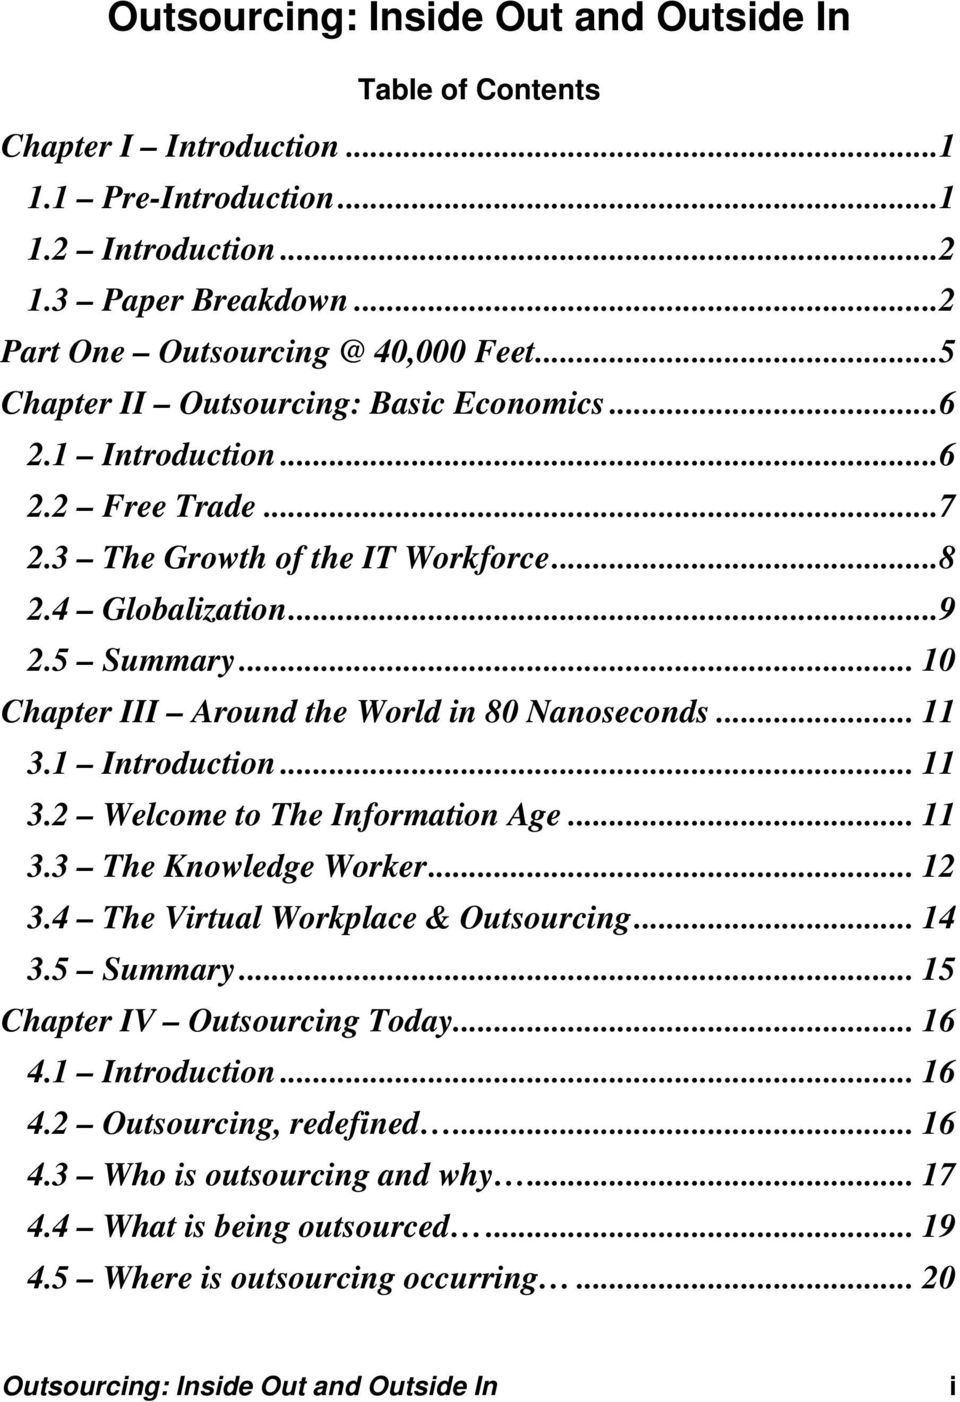 .. 10 Chapter III Around the World in 80 Nanoseconds... 11 3.1 Introduction... 11 3.2 Welcome to The Information Age... 11 3.3 The Knowledge Worker... 12 3.4 The Virtual Workplace & Outsourcing... 14 3.